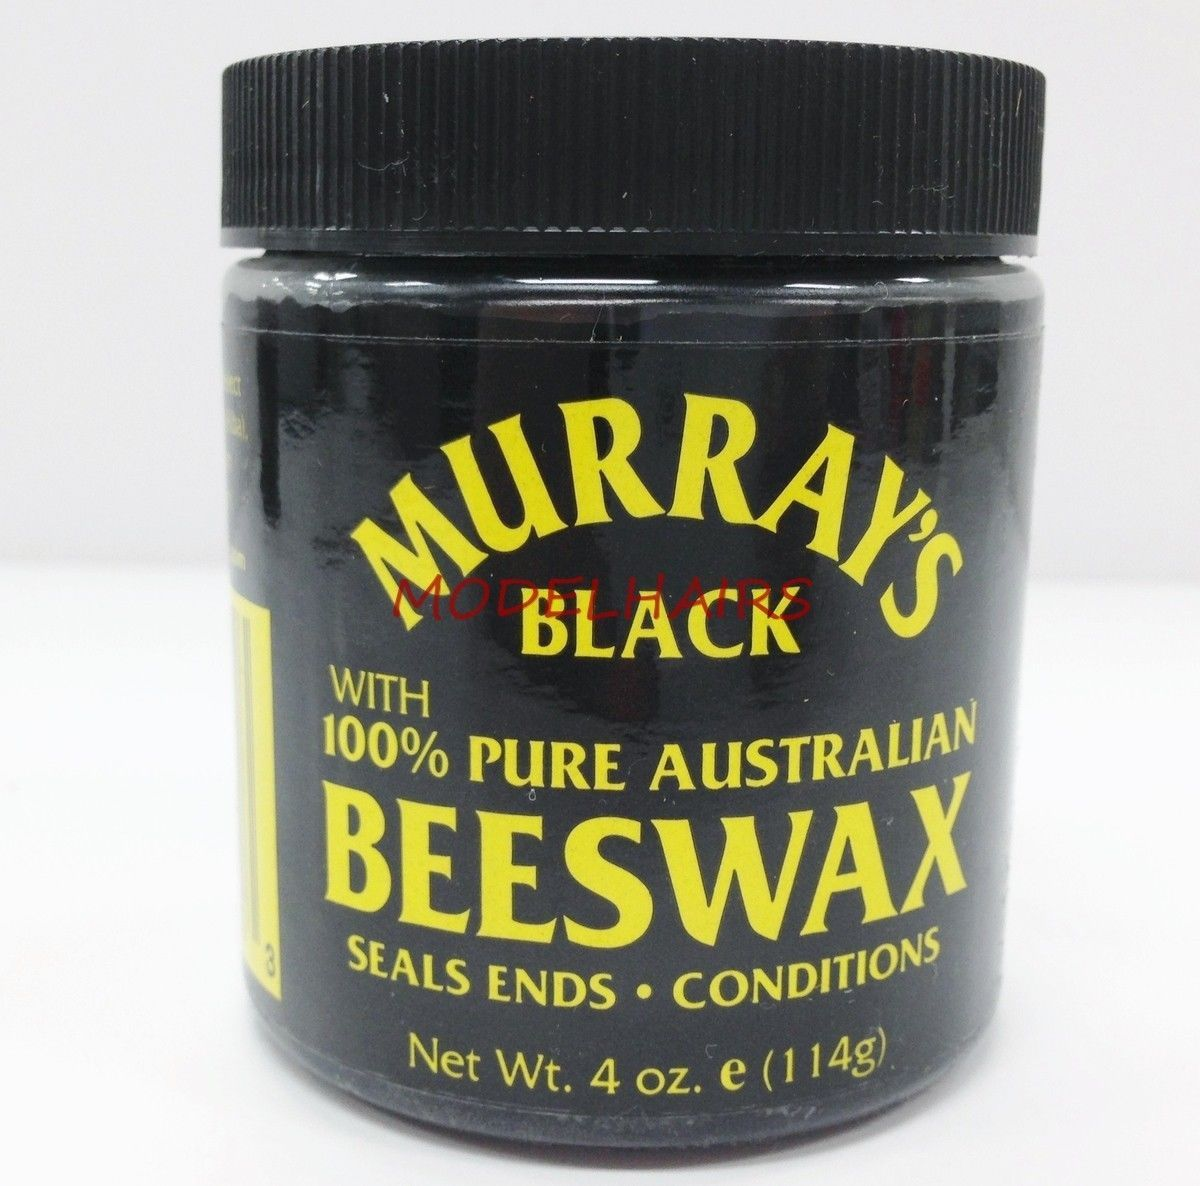 MURRAY'S BLACK BEESWAX WITH 100% PURE AUSTRALIAN BEESWAX SEALS CONDITIONS 4oz